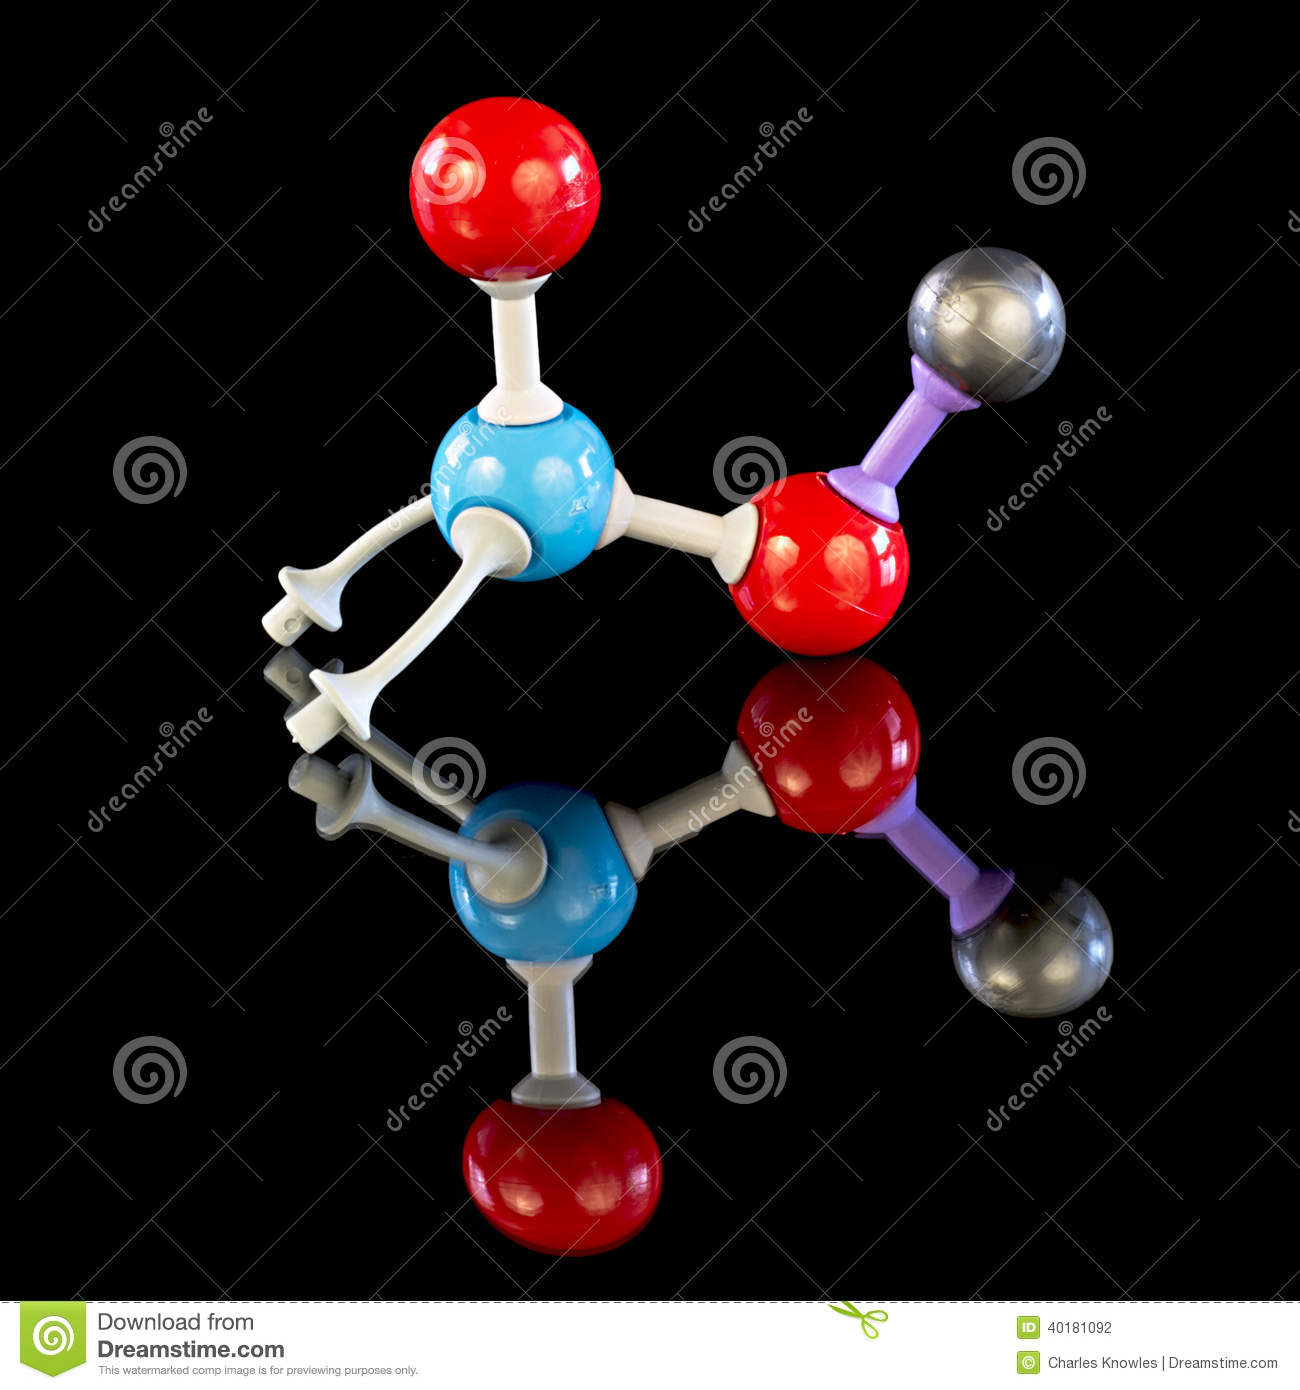 Potassium Nitrate Molecule Model Stock Photo - Image: 40181092